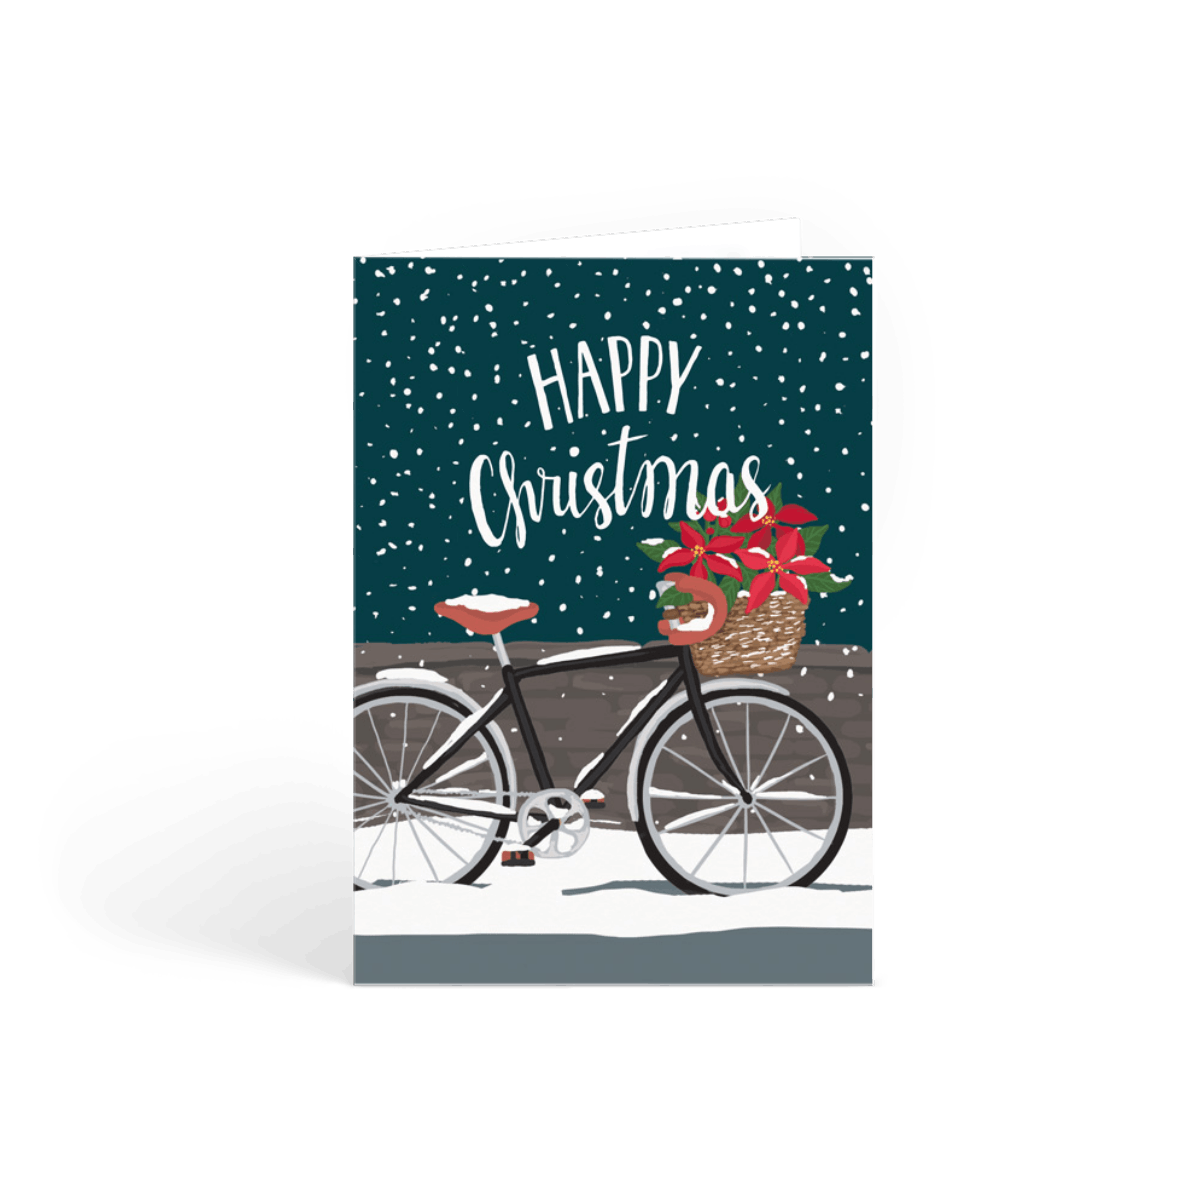 Https%3a%2f%2fwww.papier.com%2fproduct image%2f3569%2f2%2fchristmas bicycle 953 avant 1541427243.png?ixlib=rb 1.1